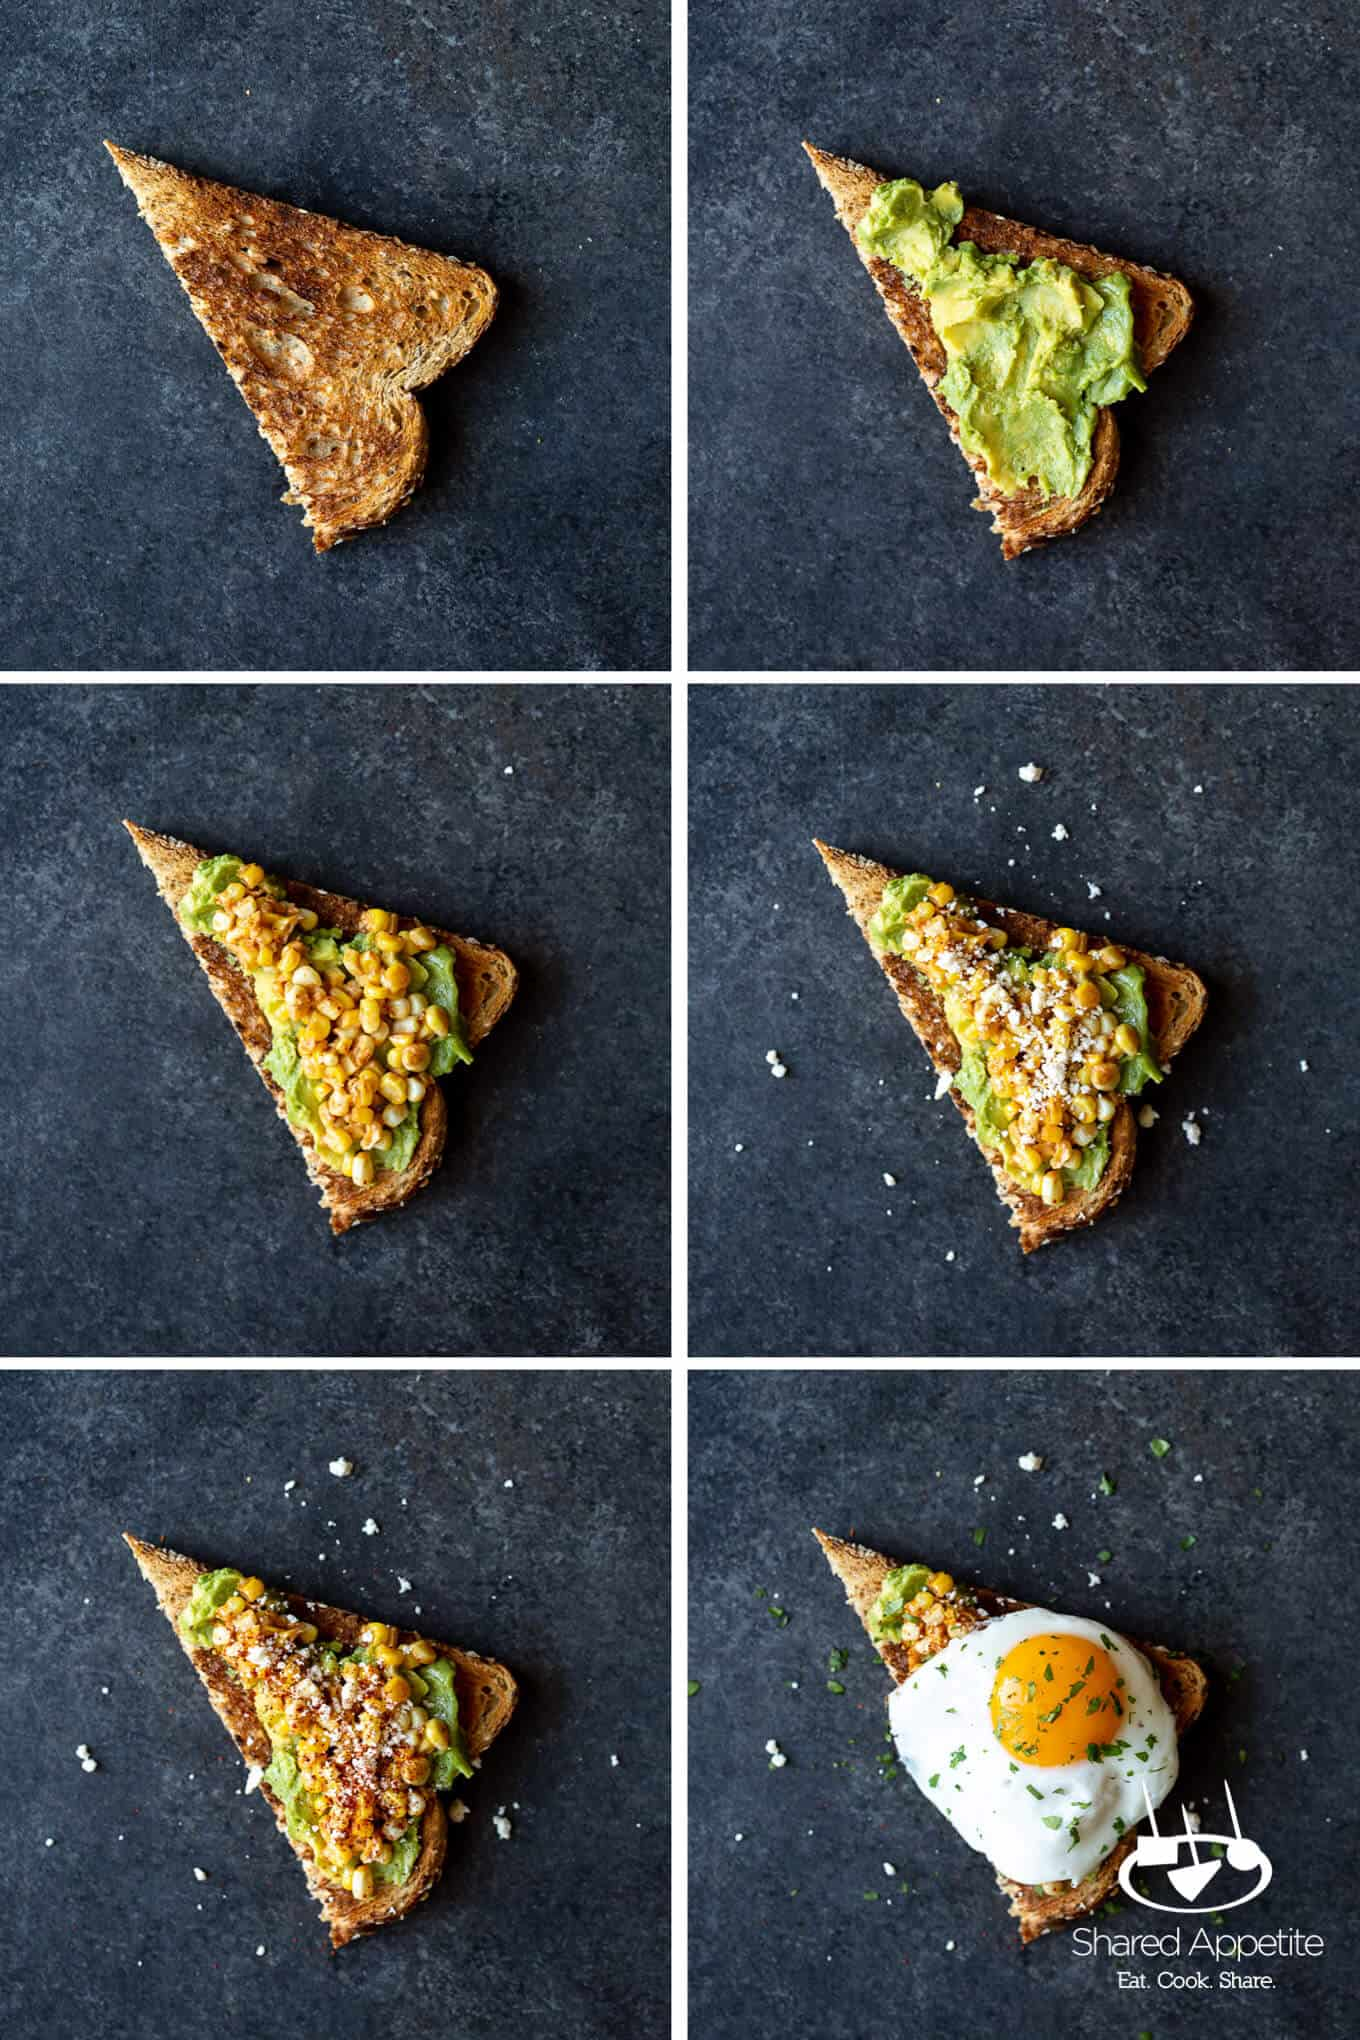 steps to making Elotes Avocado Toast with a Fried Egg | sharedappetite.com